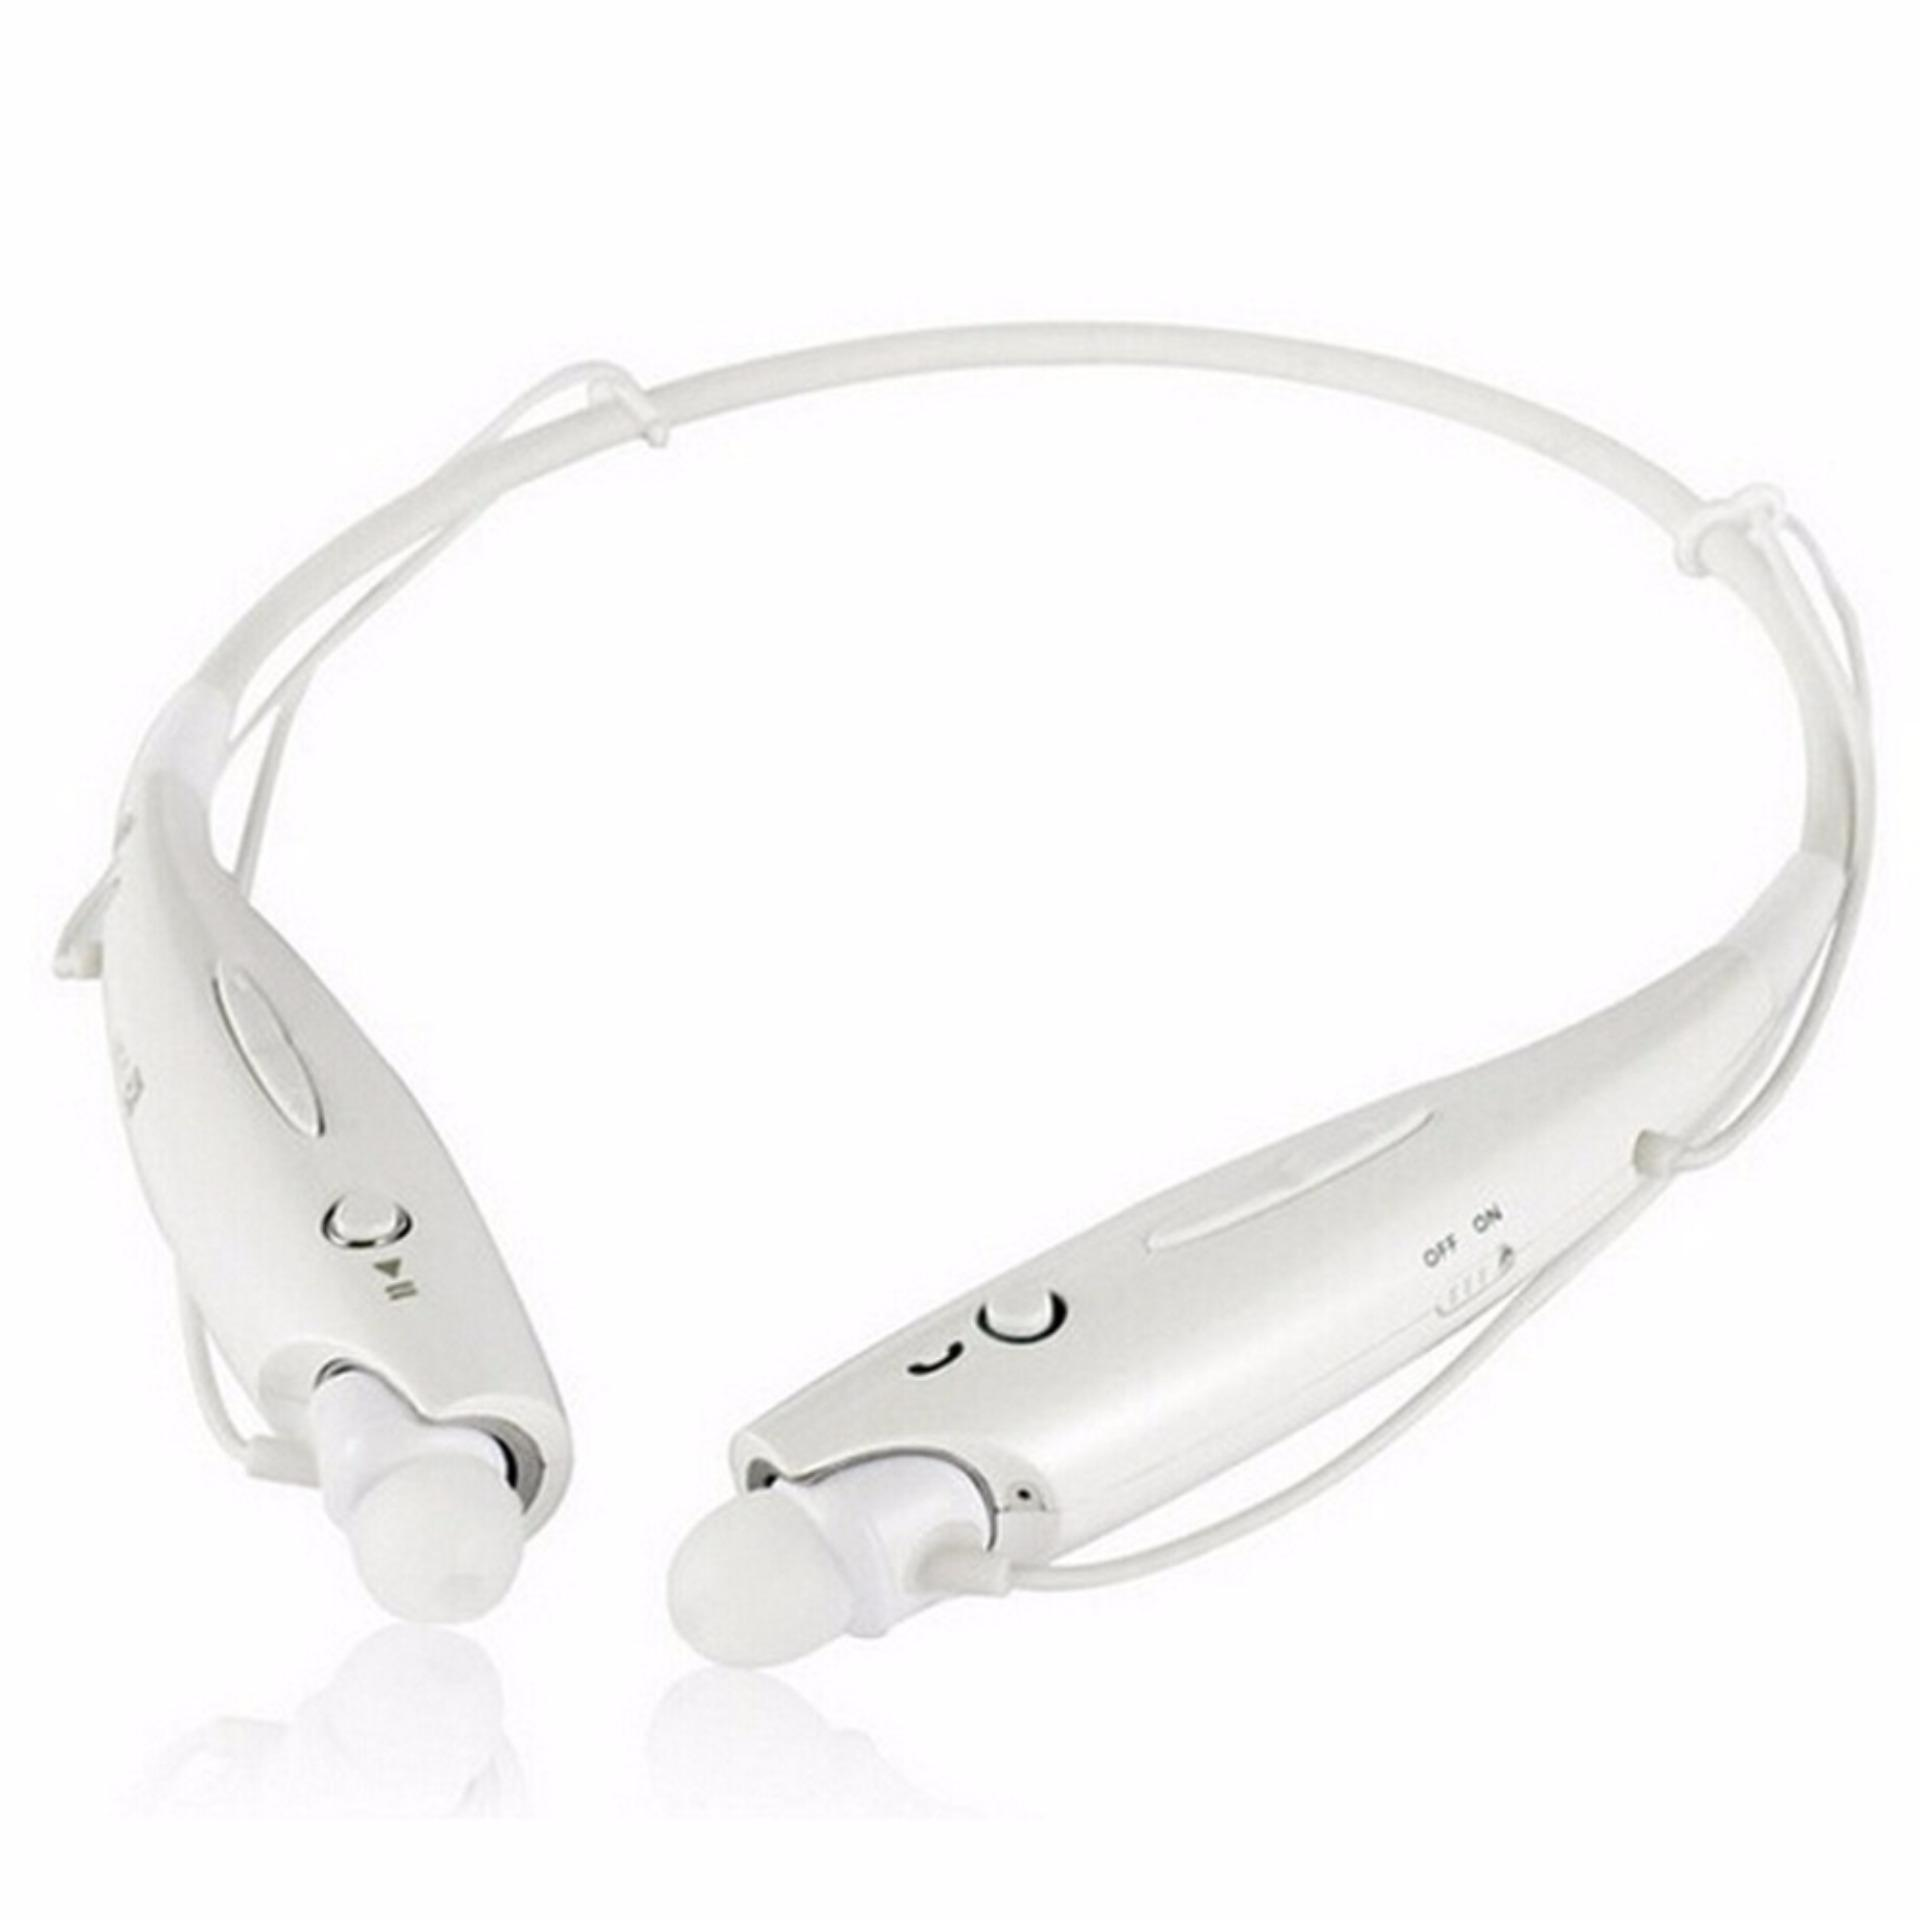 Review Toko Samsung Bluetooth Headset Two Channel Mp3 Music Headphone Hbs 730